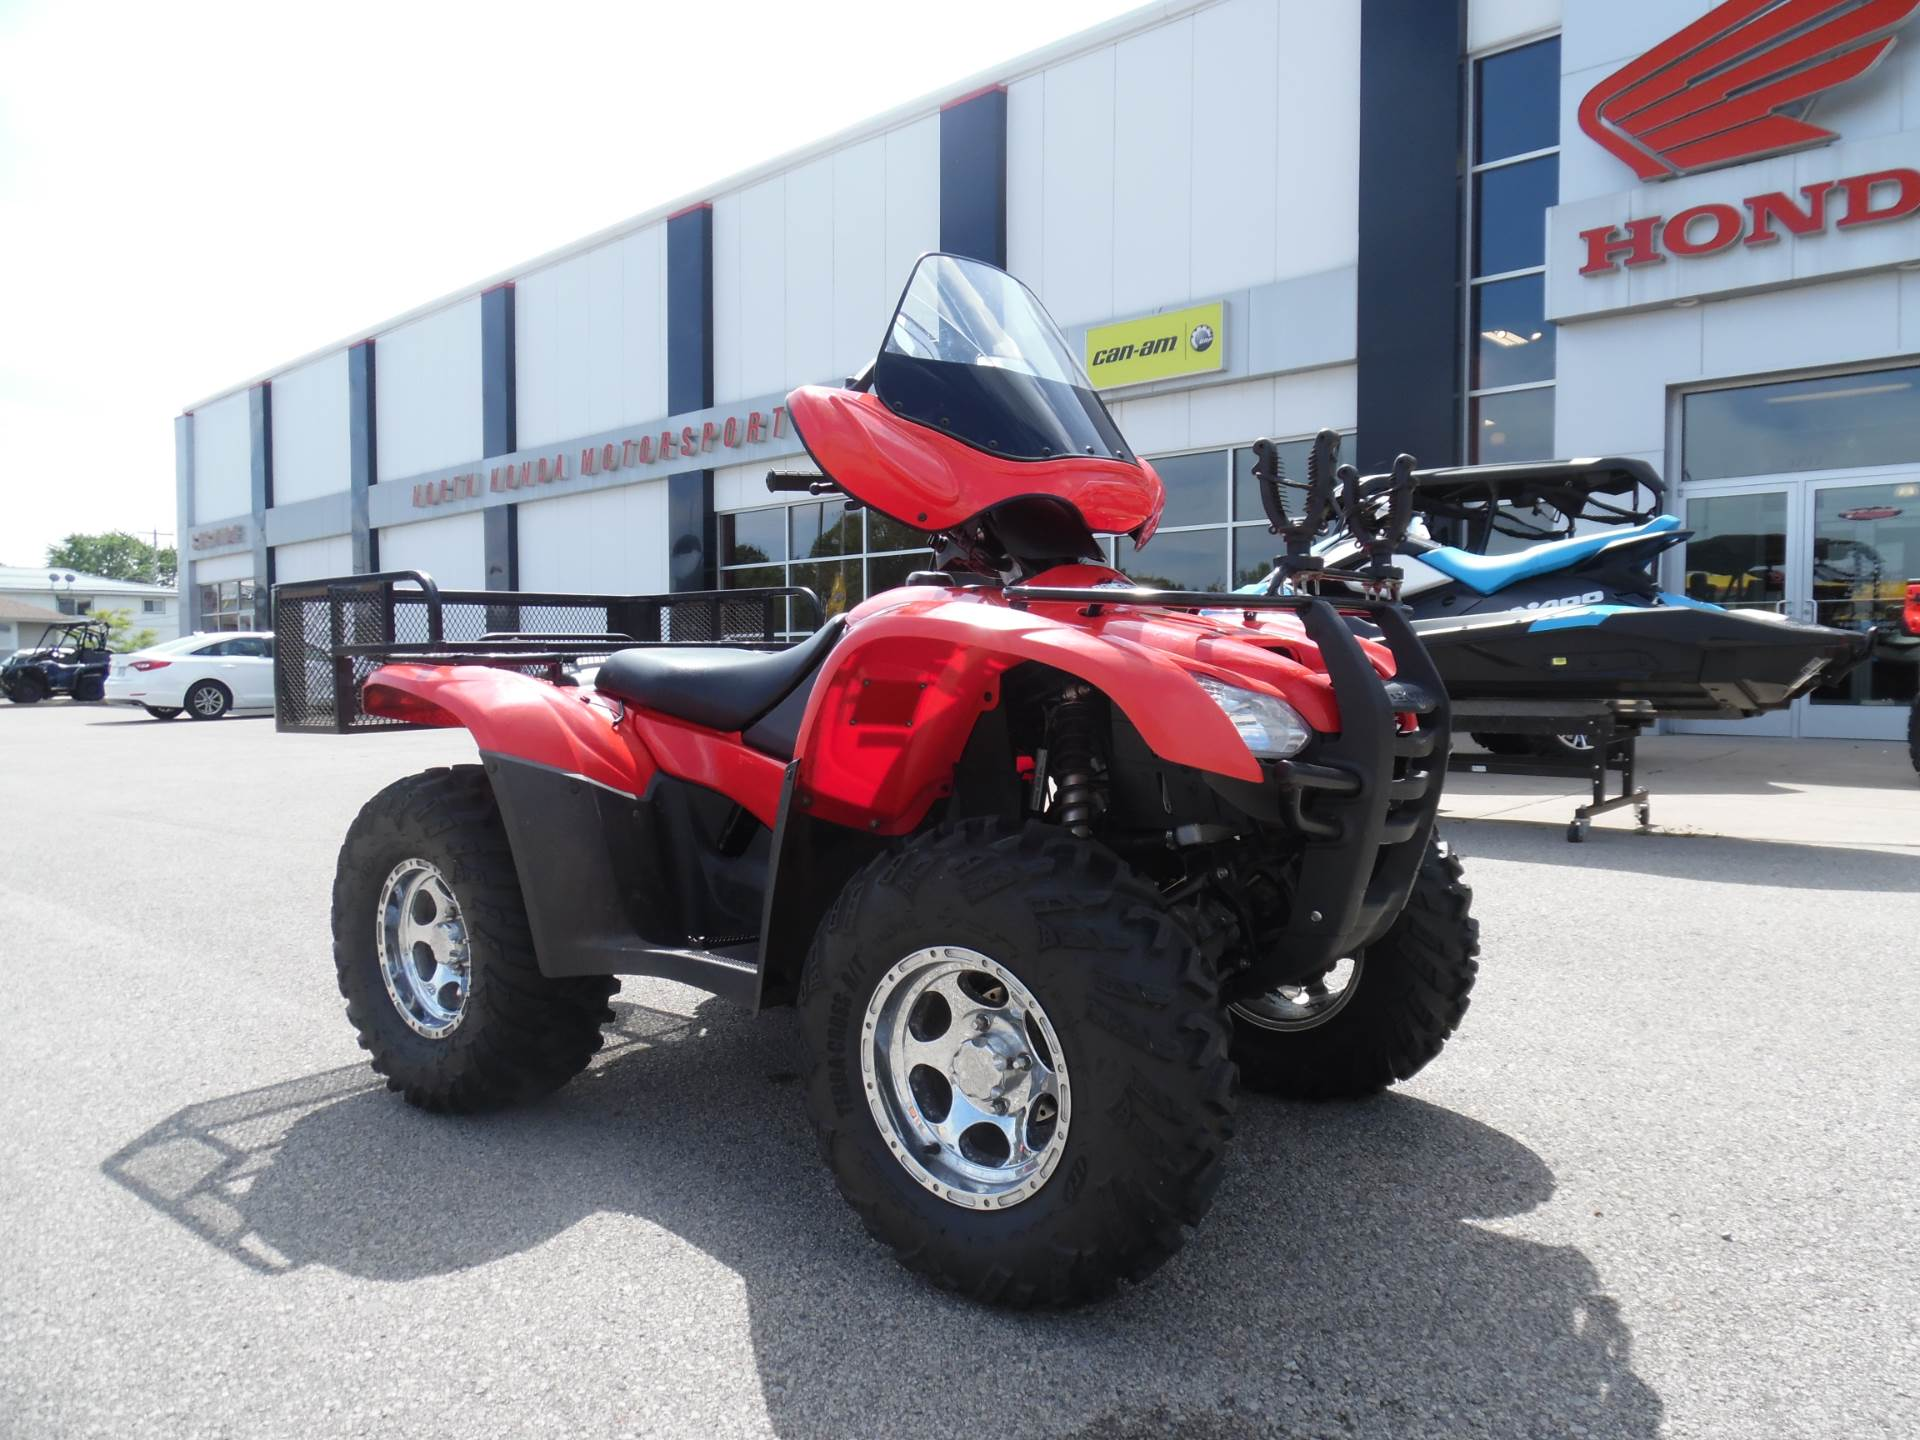 2009 FourTrax Rancher AT Power Steering